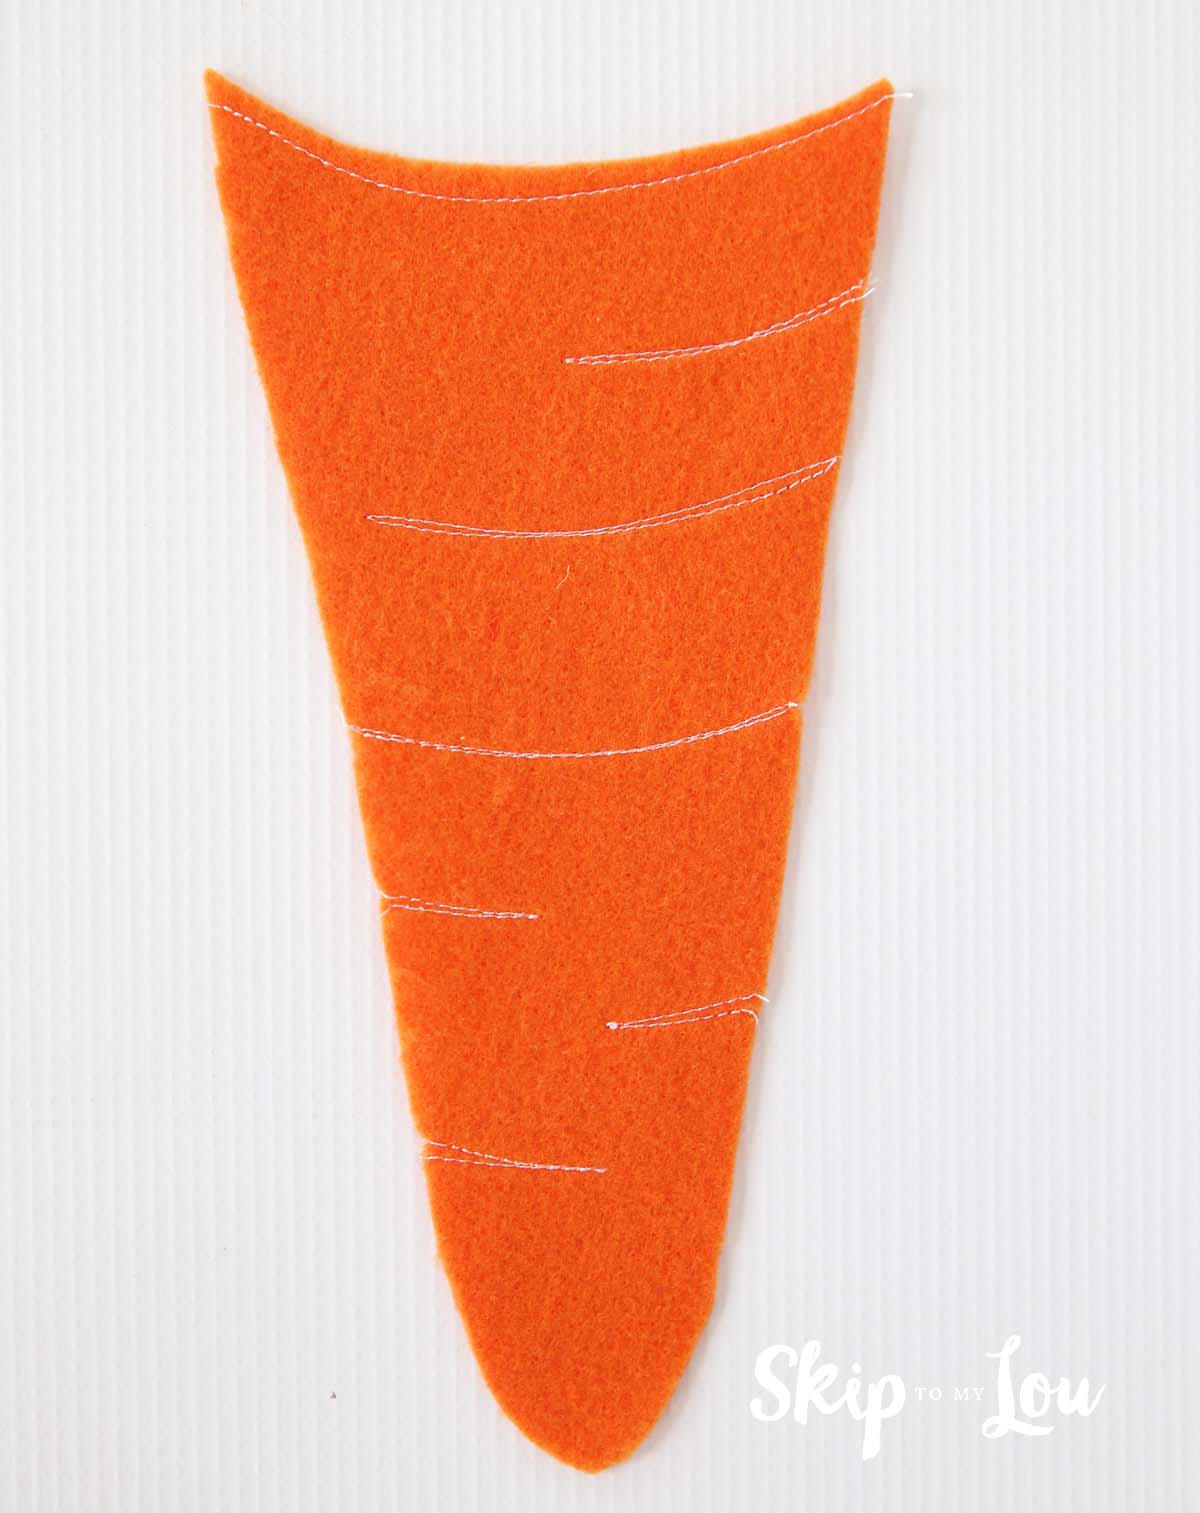 felt carrot pencil holder sewn details